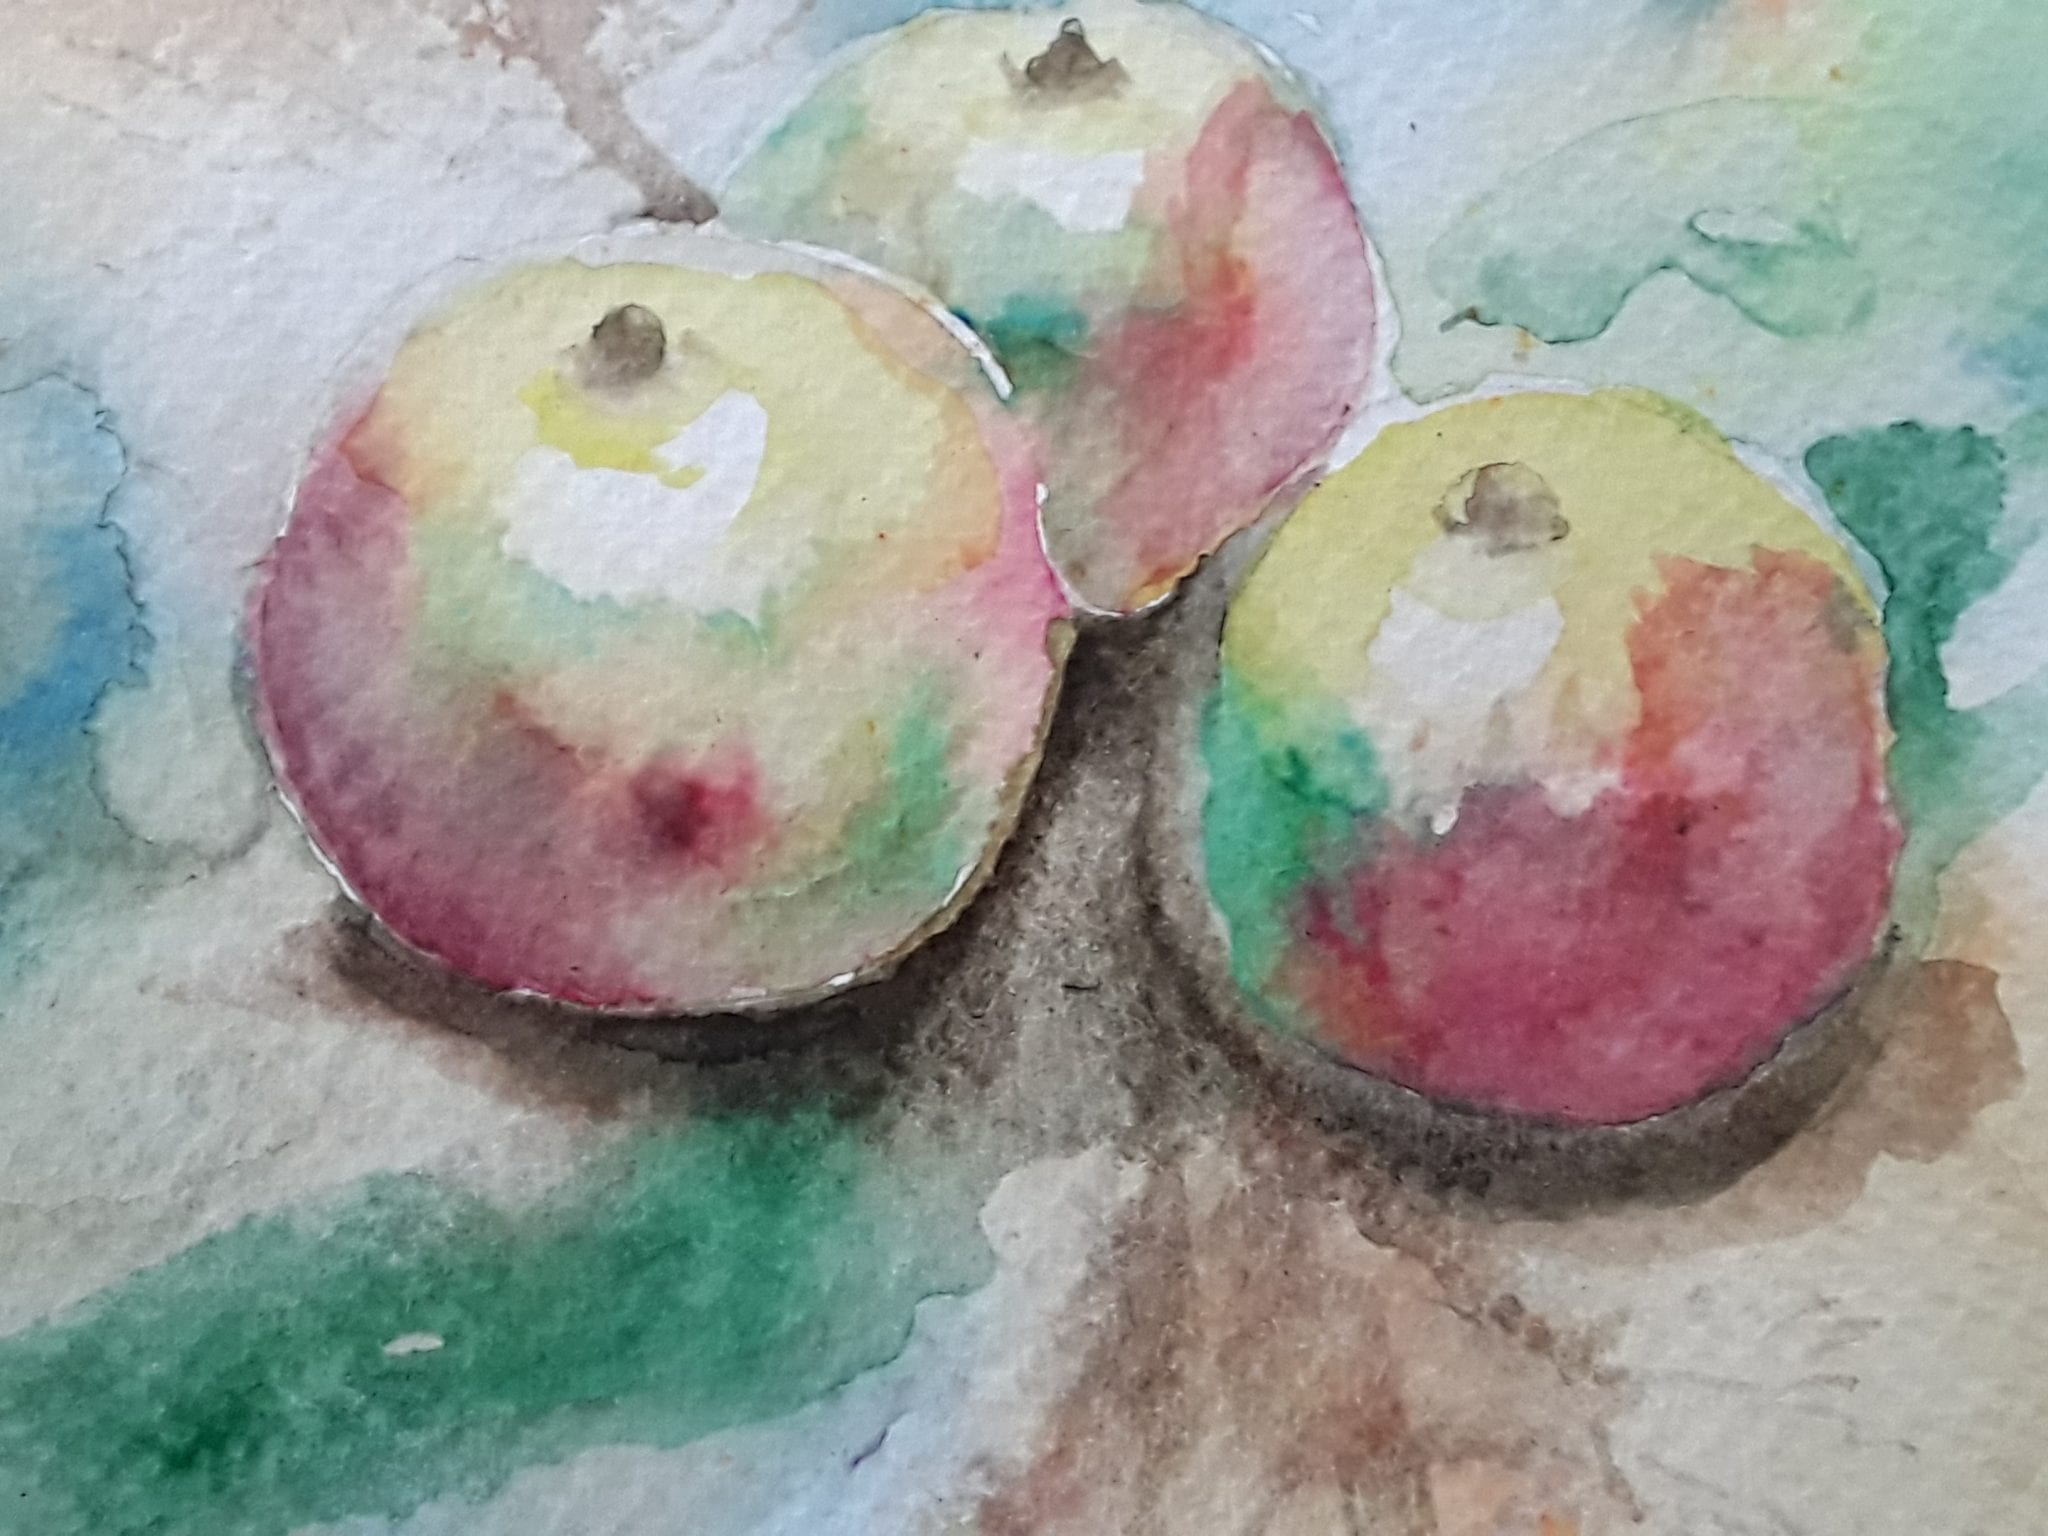 Watercolour of apples